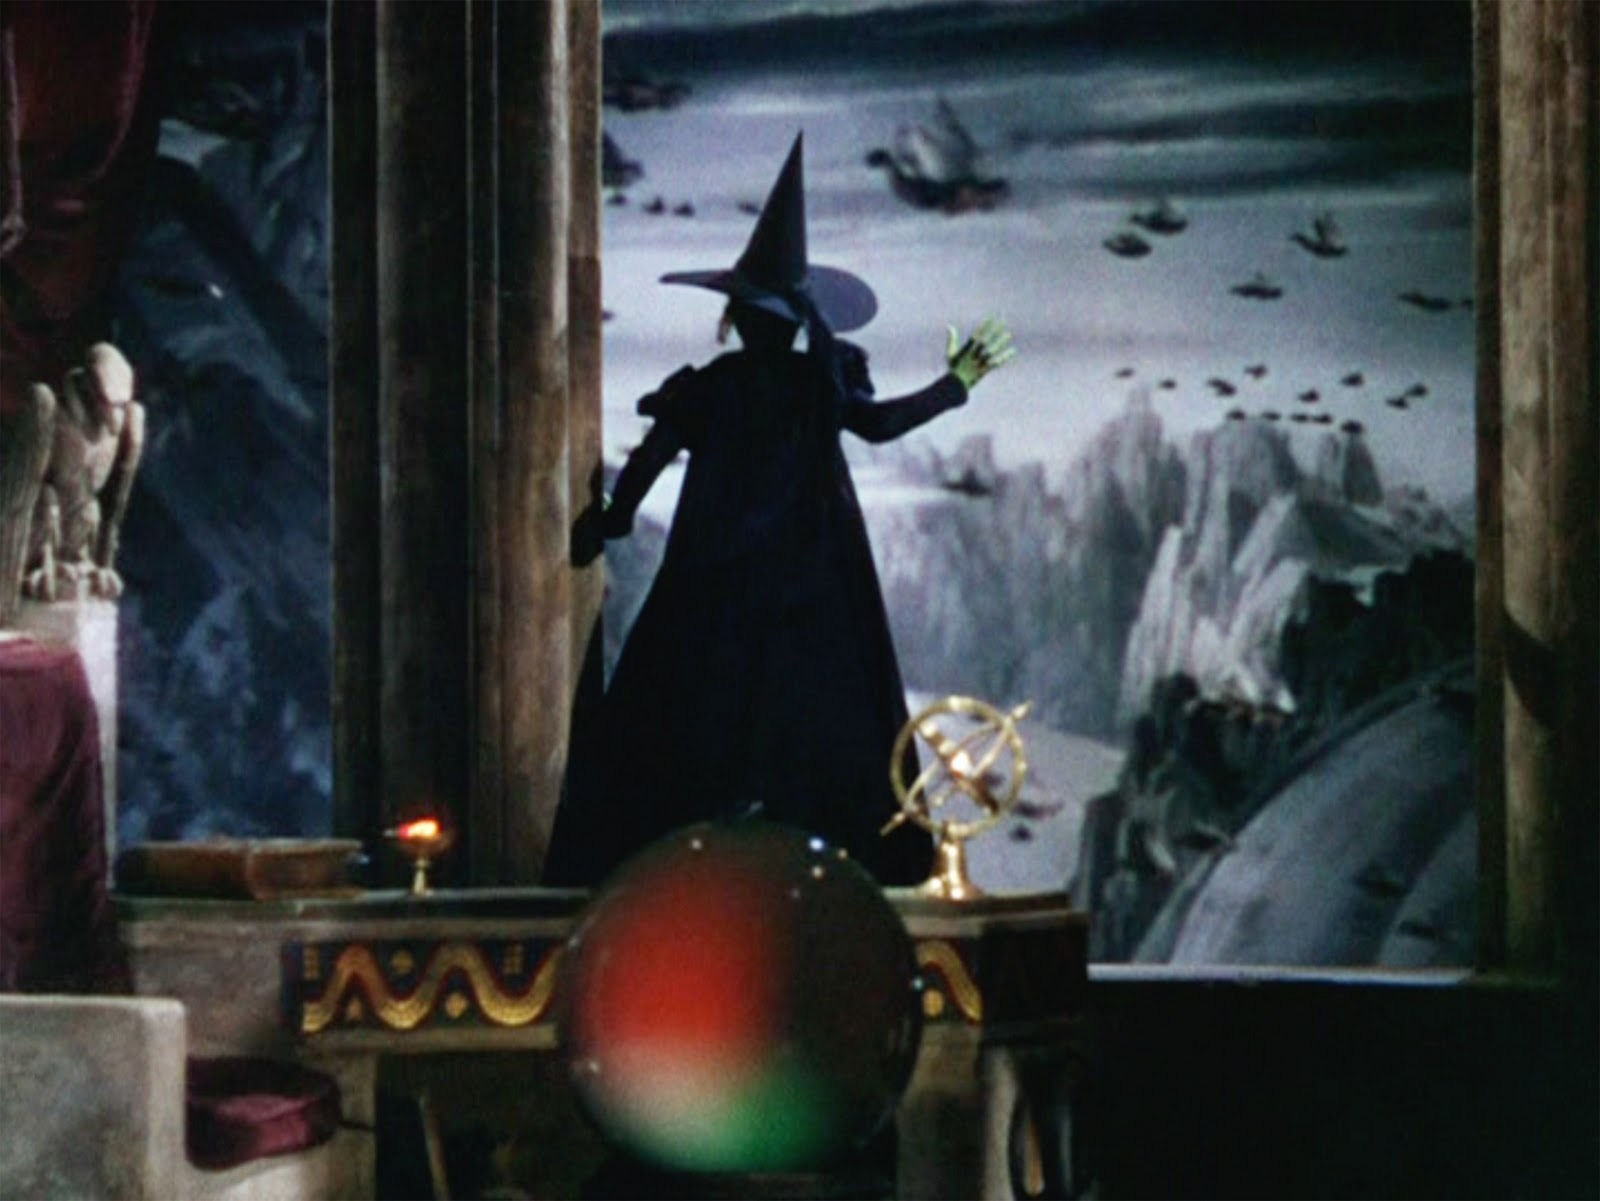 Behind the curtain wizard of oz - Abagond